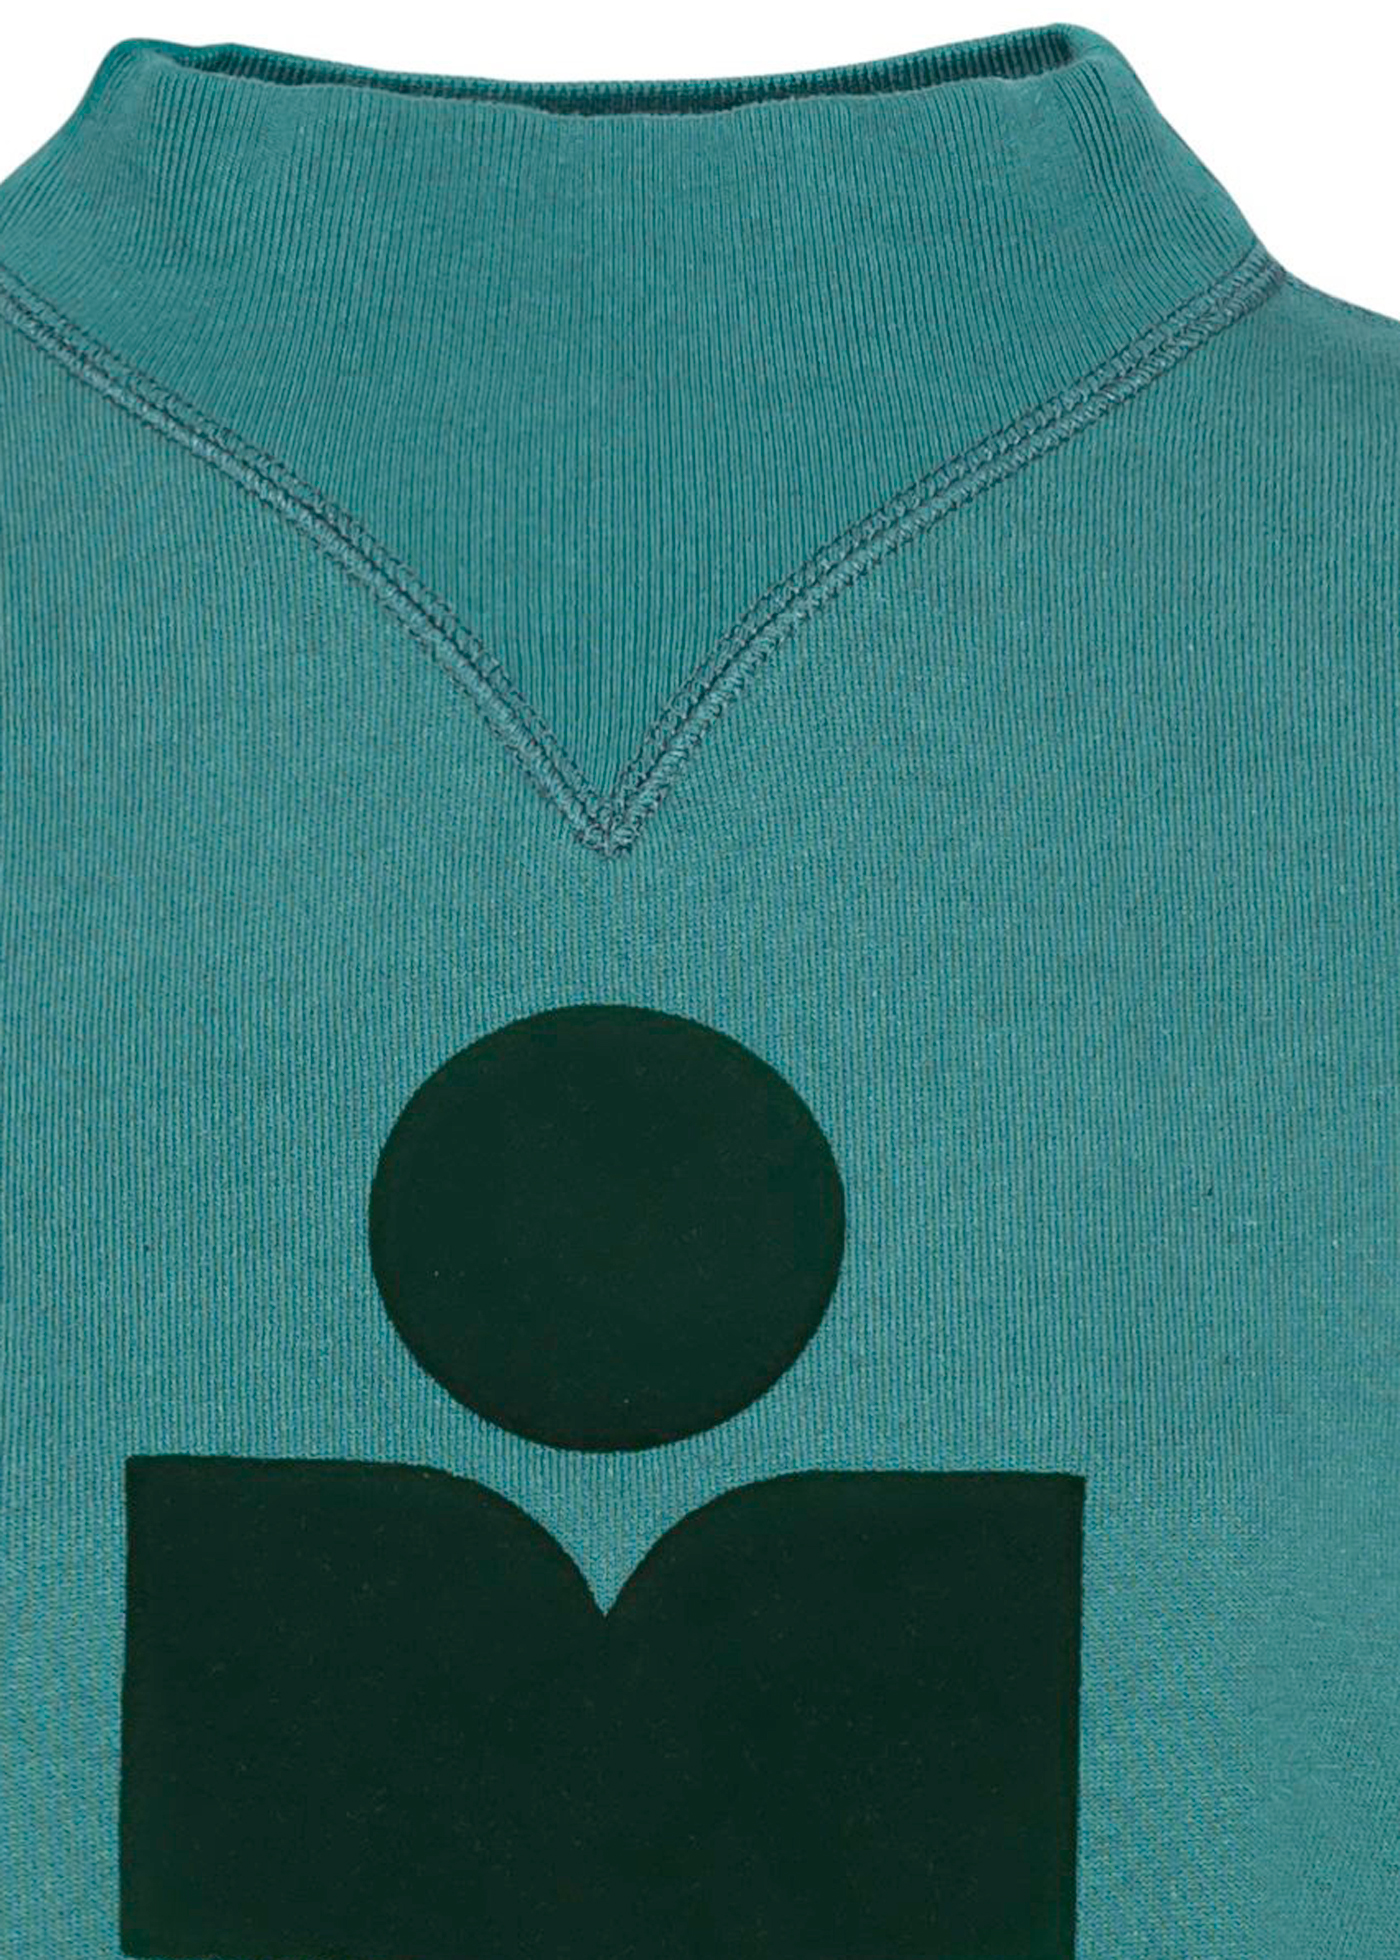 Sweat shirt MOBY image number 2